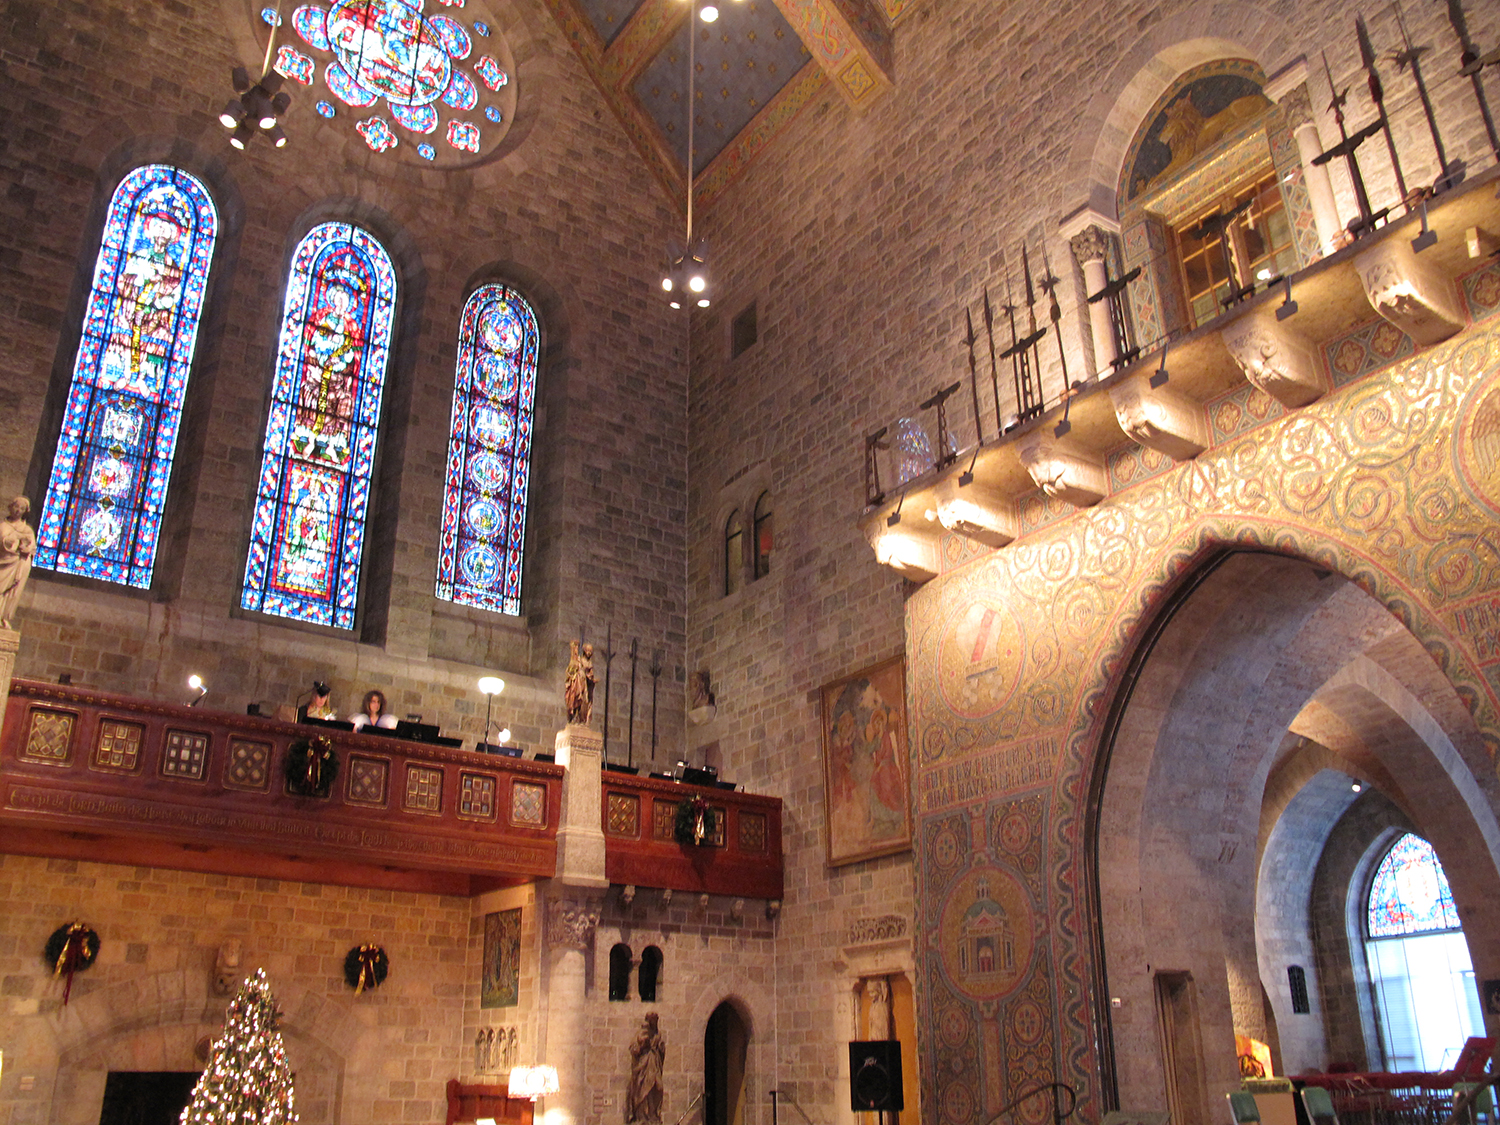 Figure 3: Medieval stained-glass window installation and mosaic arch, Great Hall, Glencairn Museum, Bryn Athyn, Pennsylvania. Photo: Jennifer Borland.